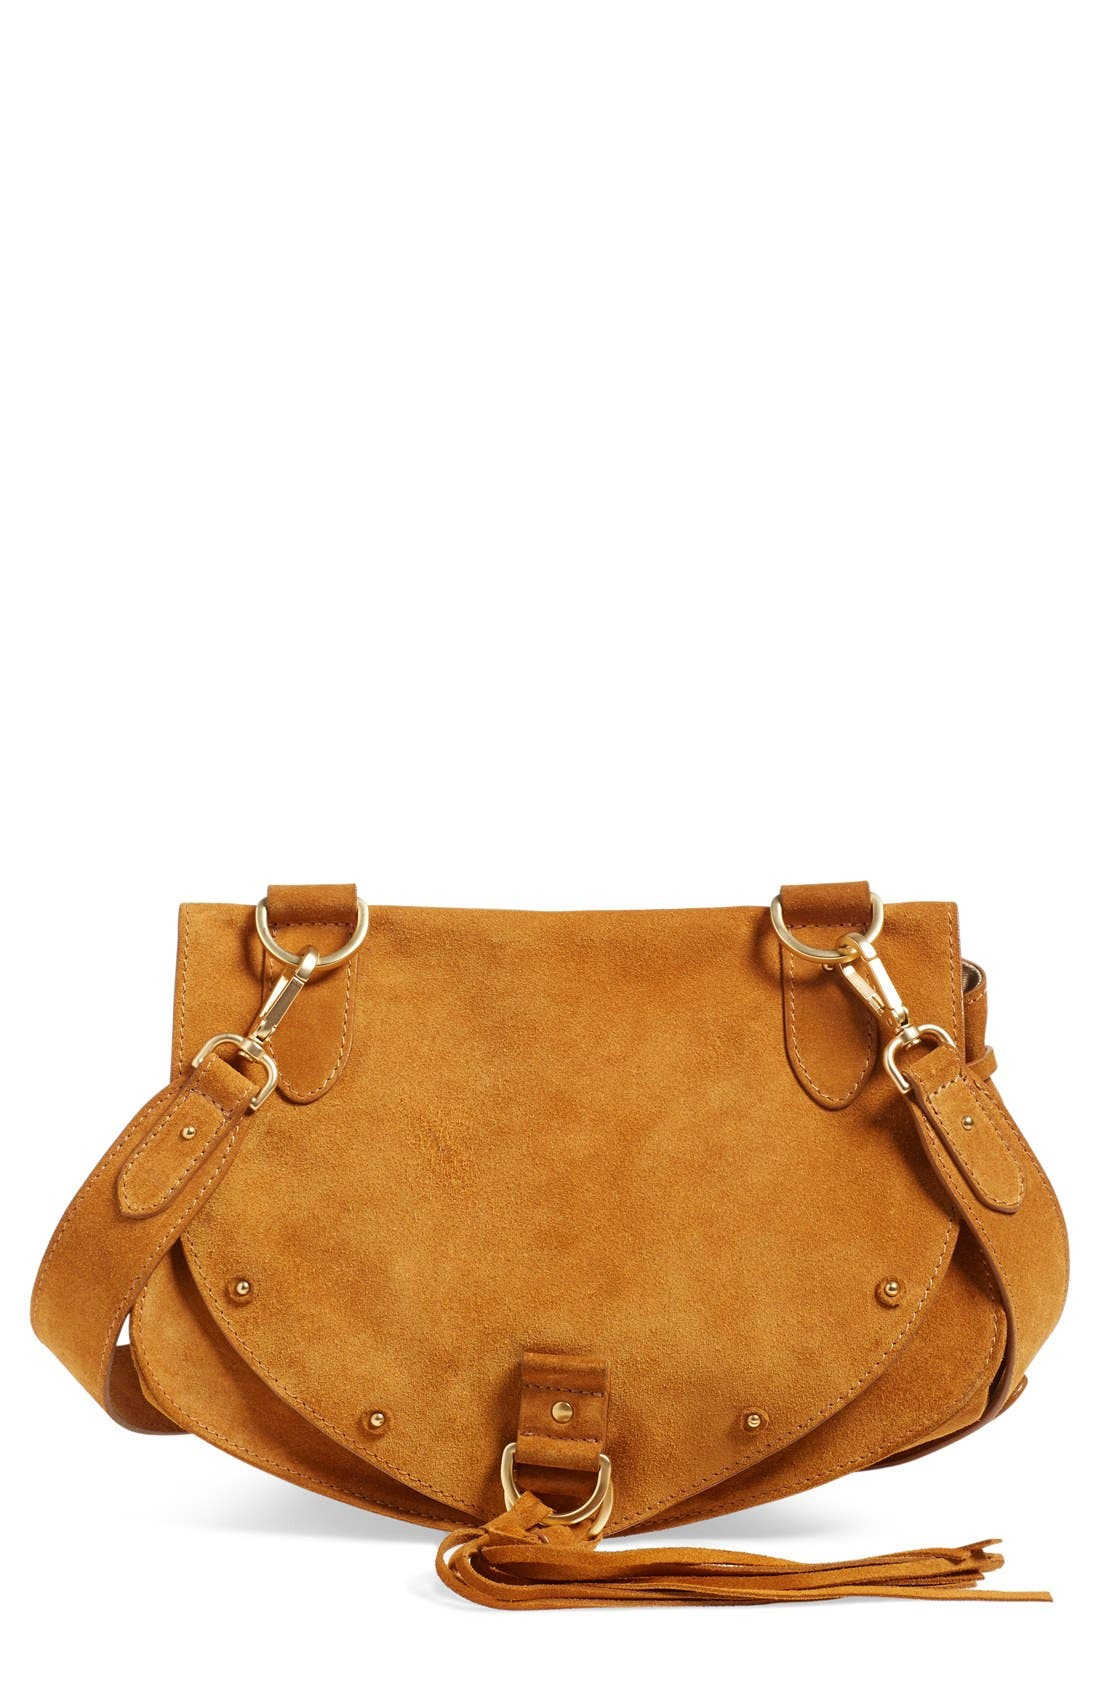 Alternate Image 1 Selected - See by Chloé 'Medium Collins' Leather & Suede Messenger Bag